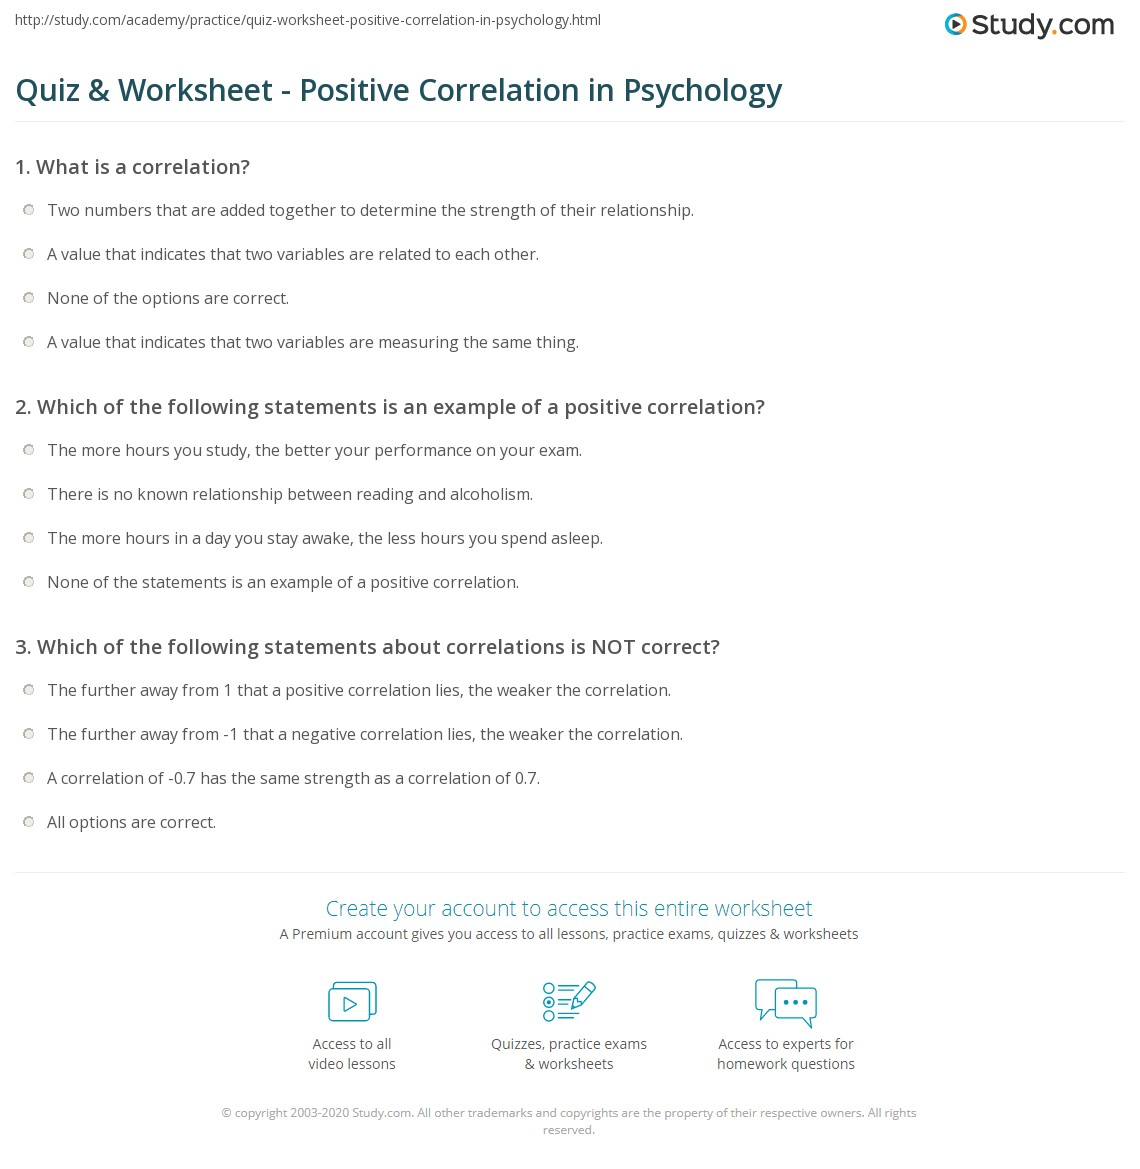 Worksheets High School Psychology Worksheets printables high school psychology worksheets eatfindr quiz worksheet positive correlation in study com print examples definiti